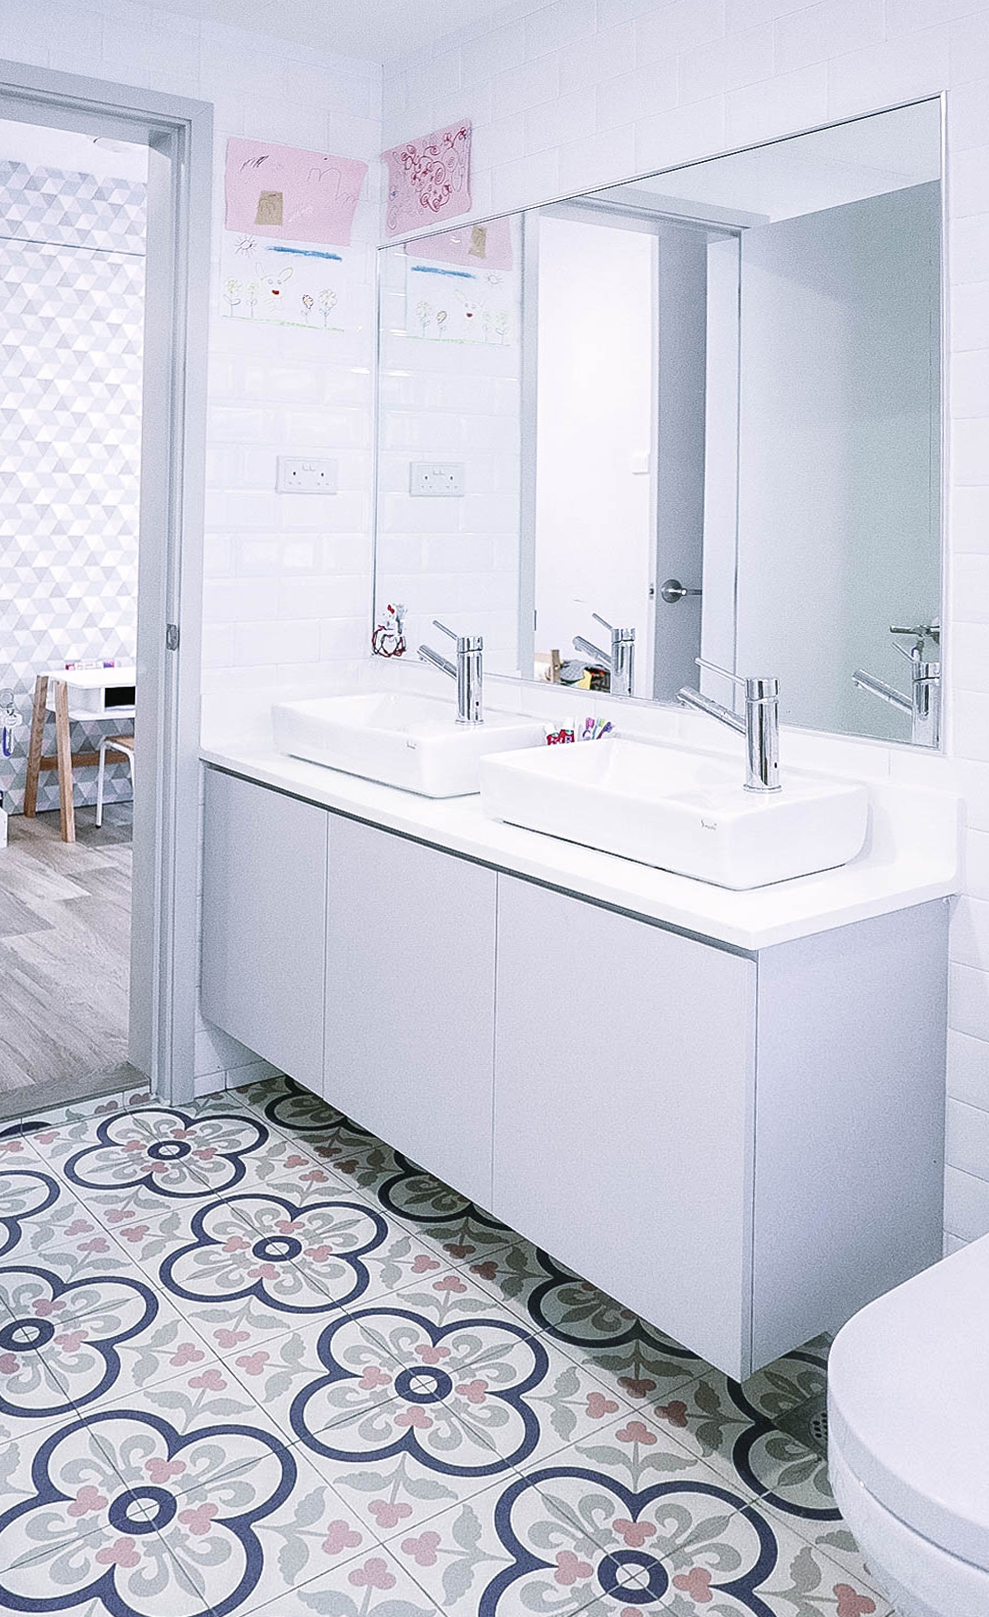 Bright Cool Urban Bathroom Floor Tiles Design